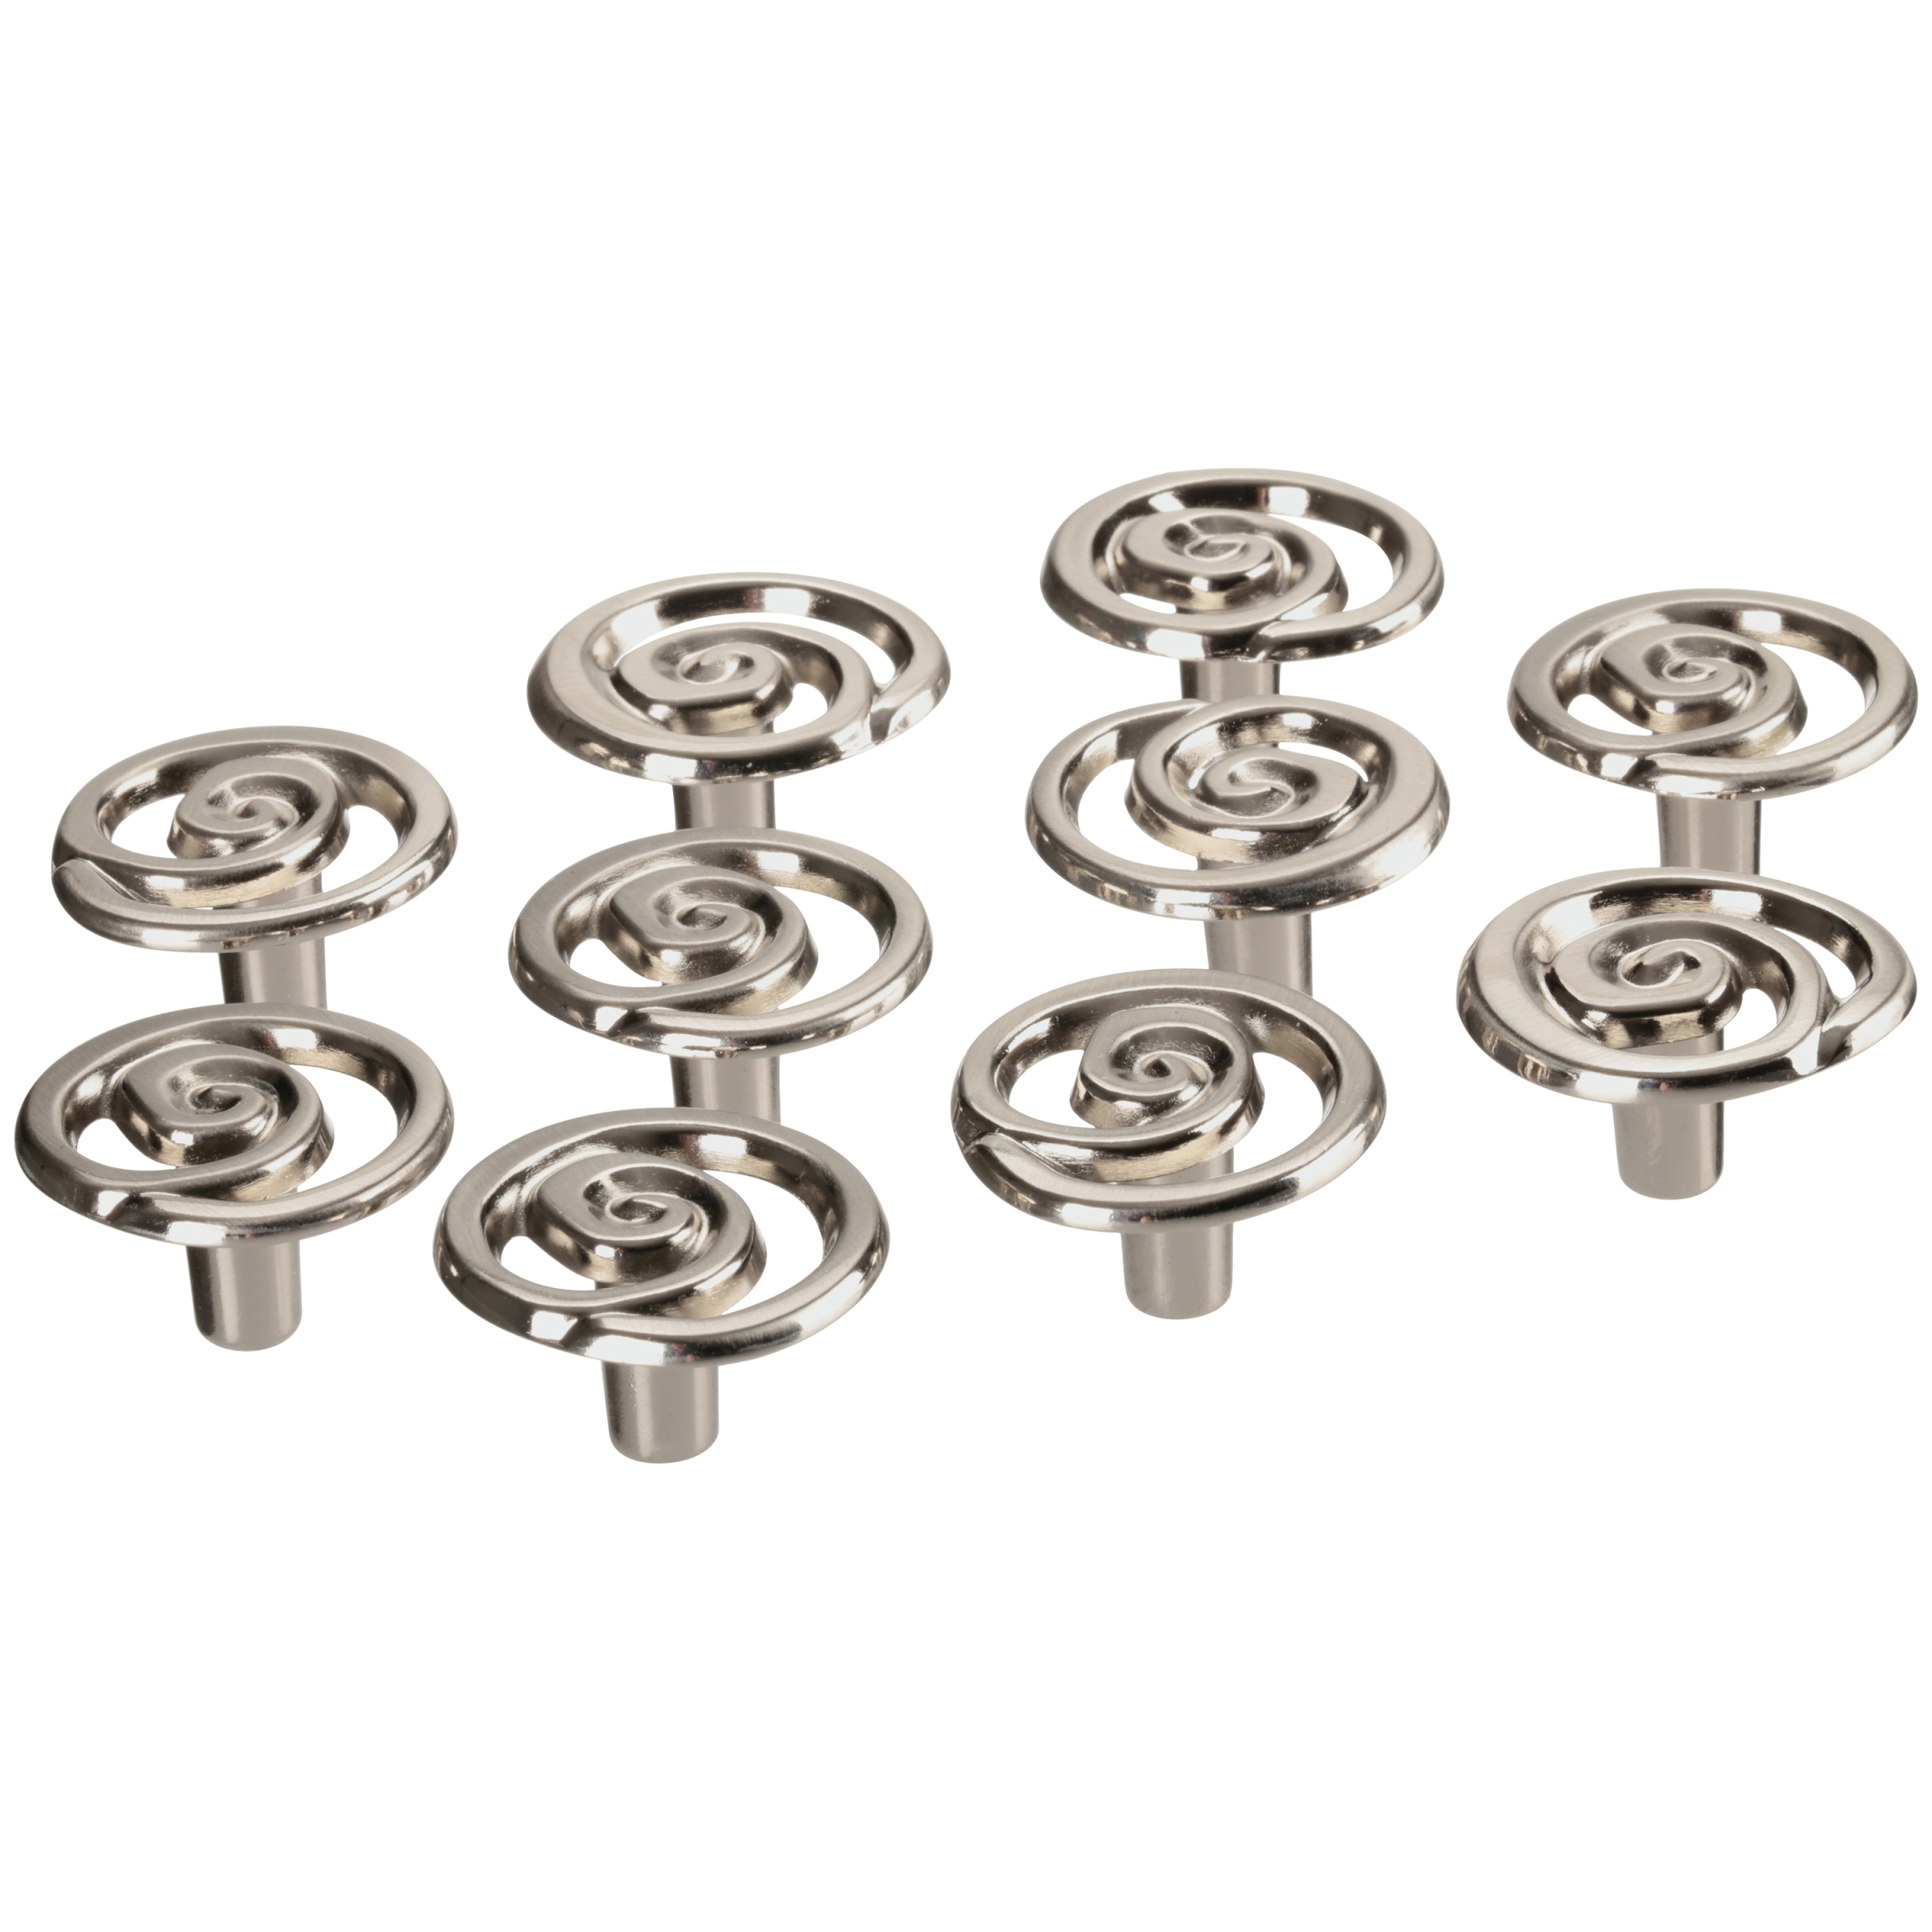 Chapter™ Satin Nickel Finish Knobs 10 ct Pack